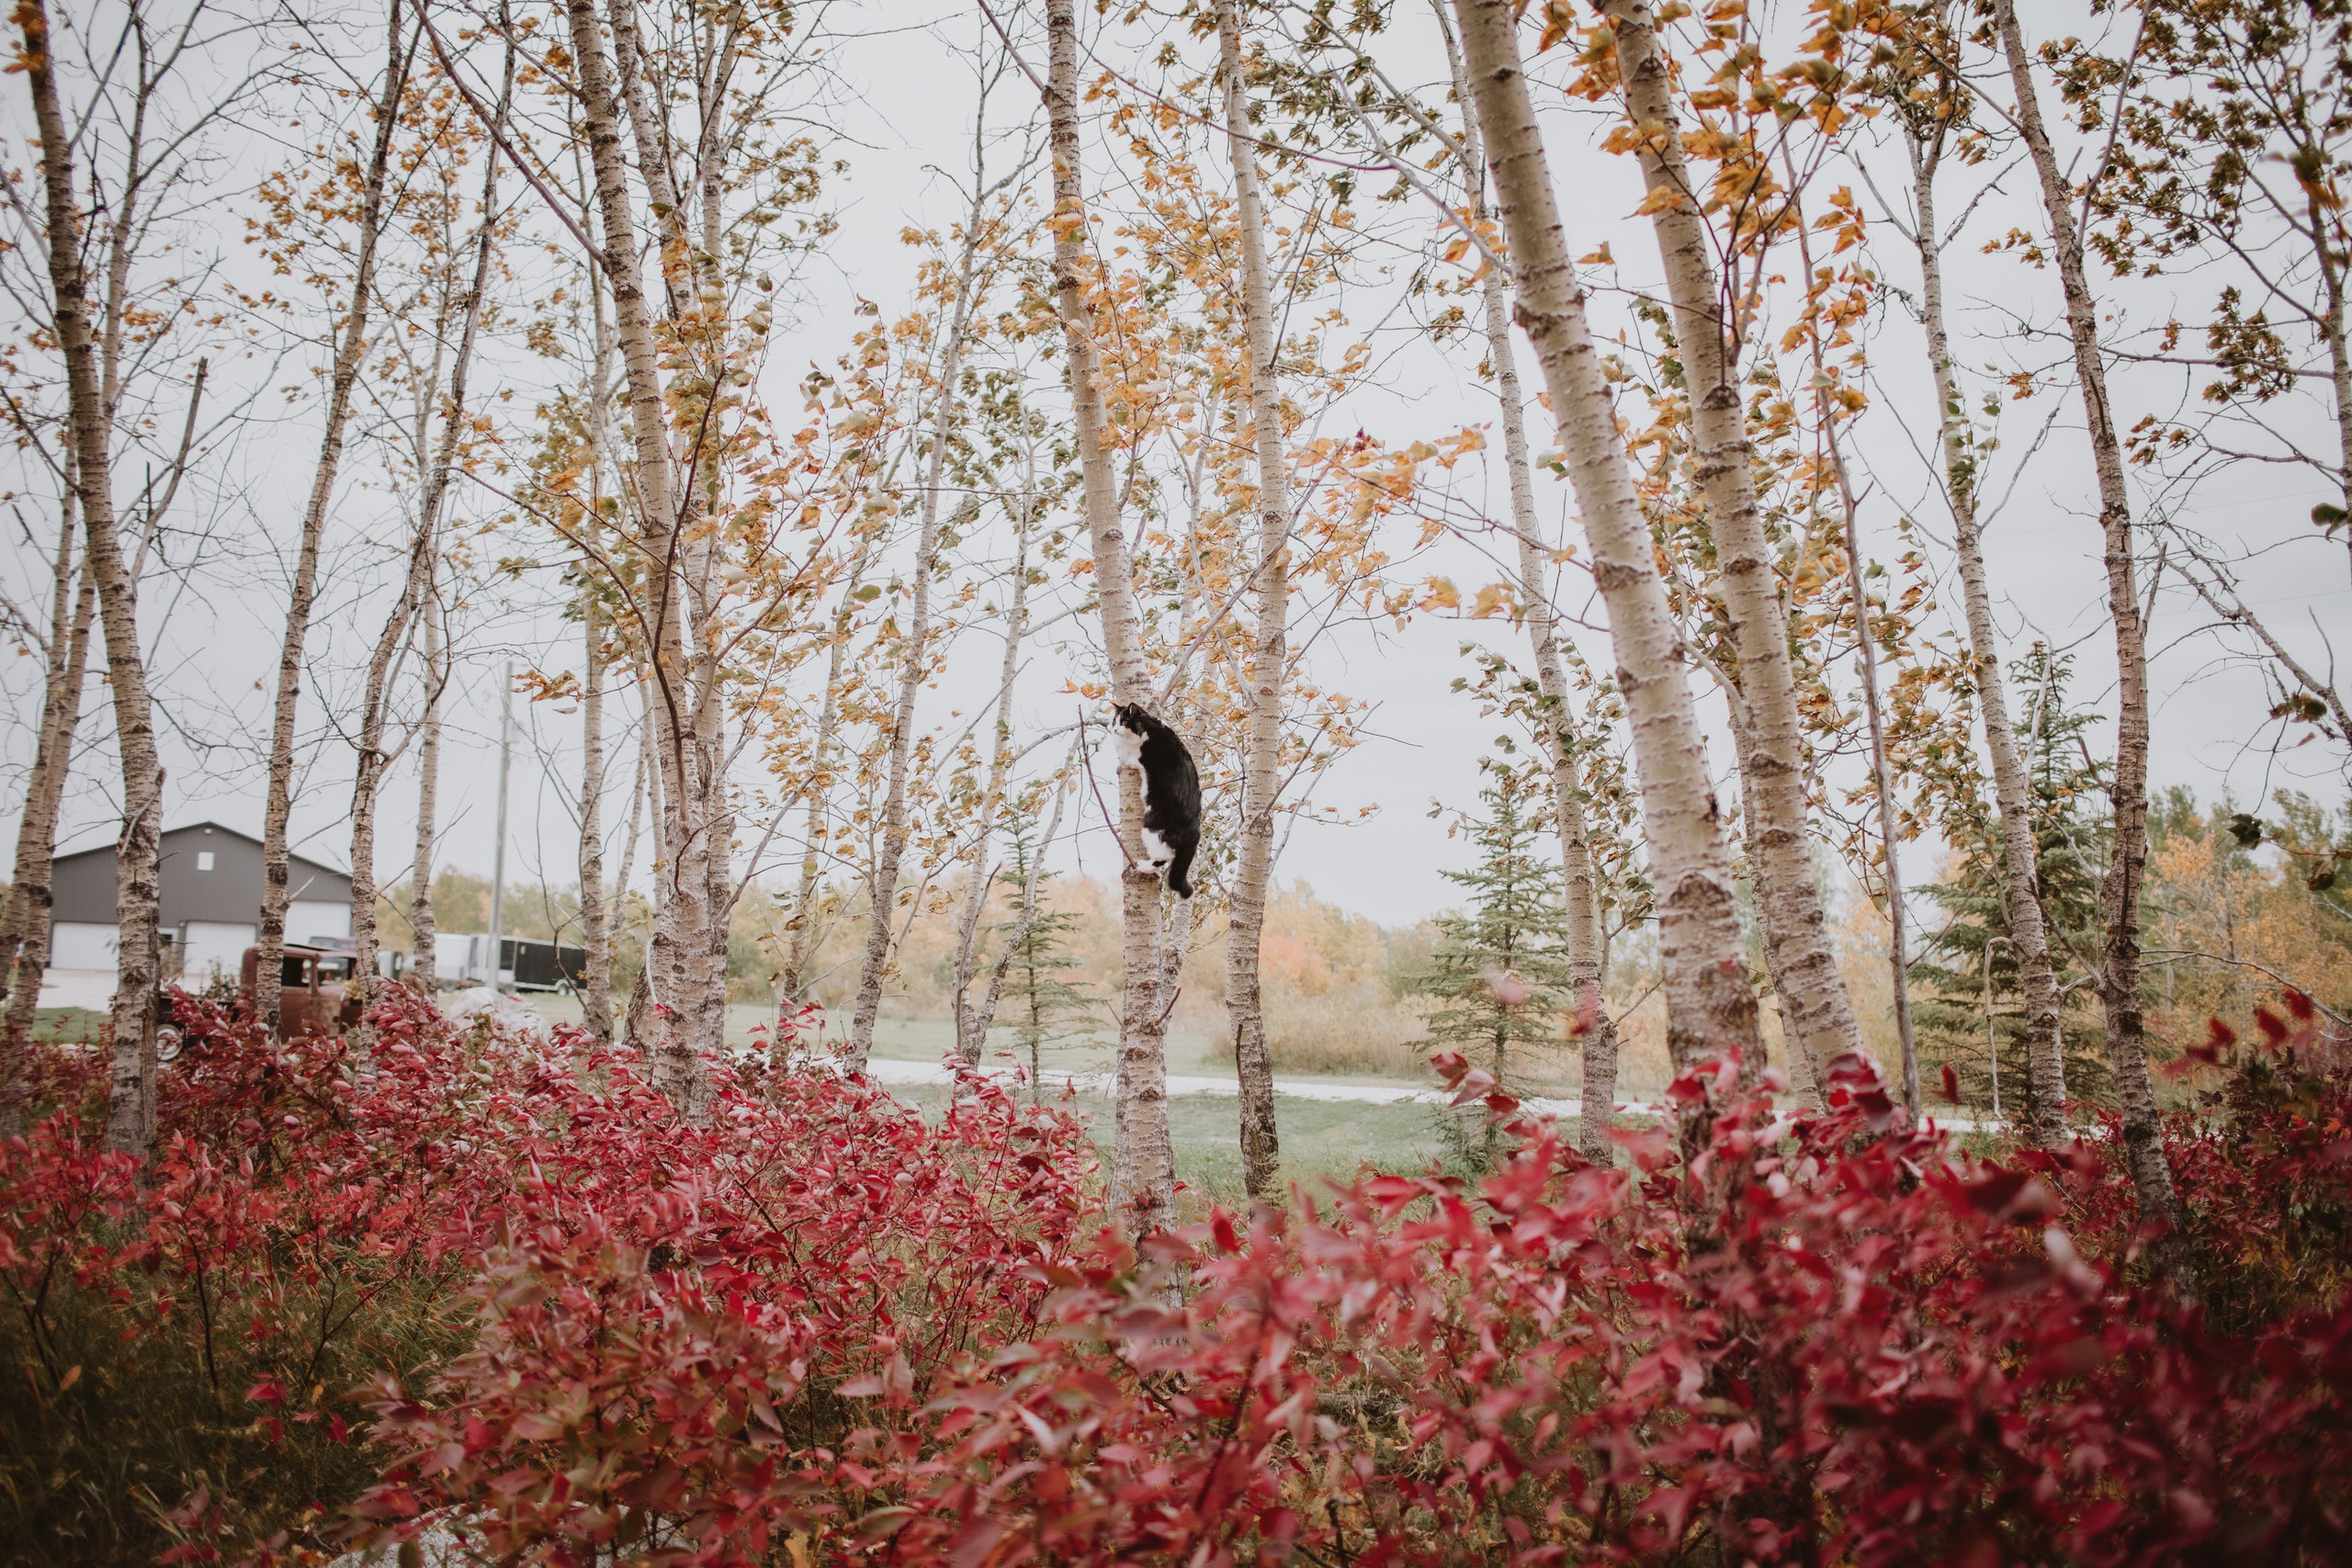 Cat Climbing Tree in the Fall during her humans' forest engagement session.